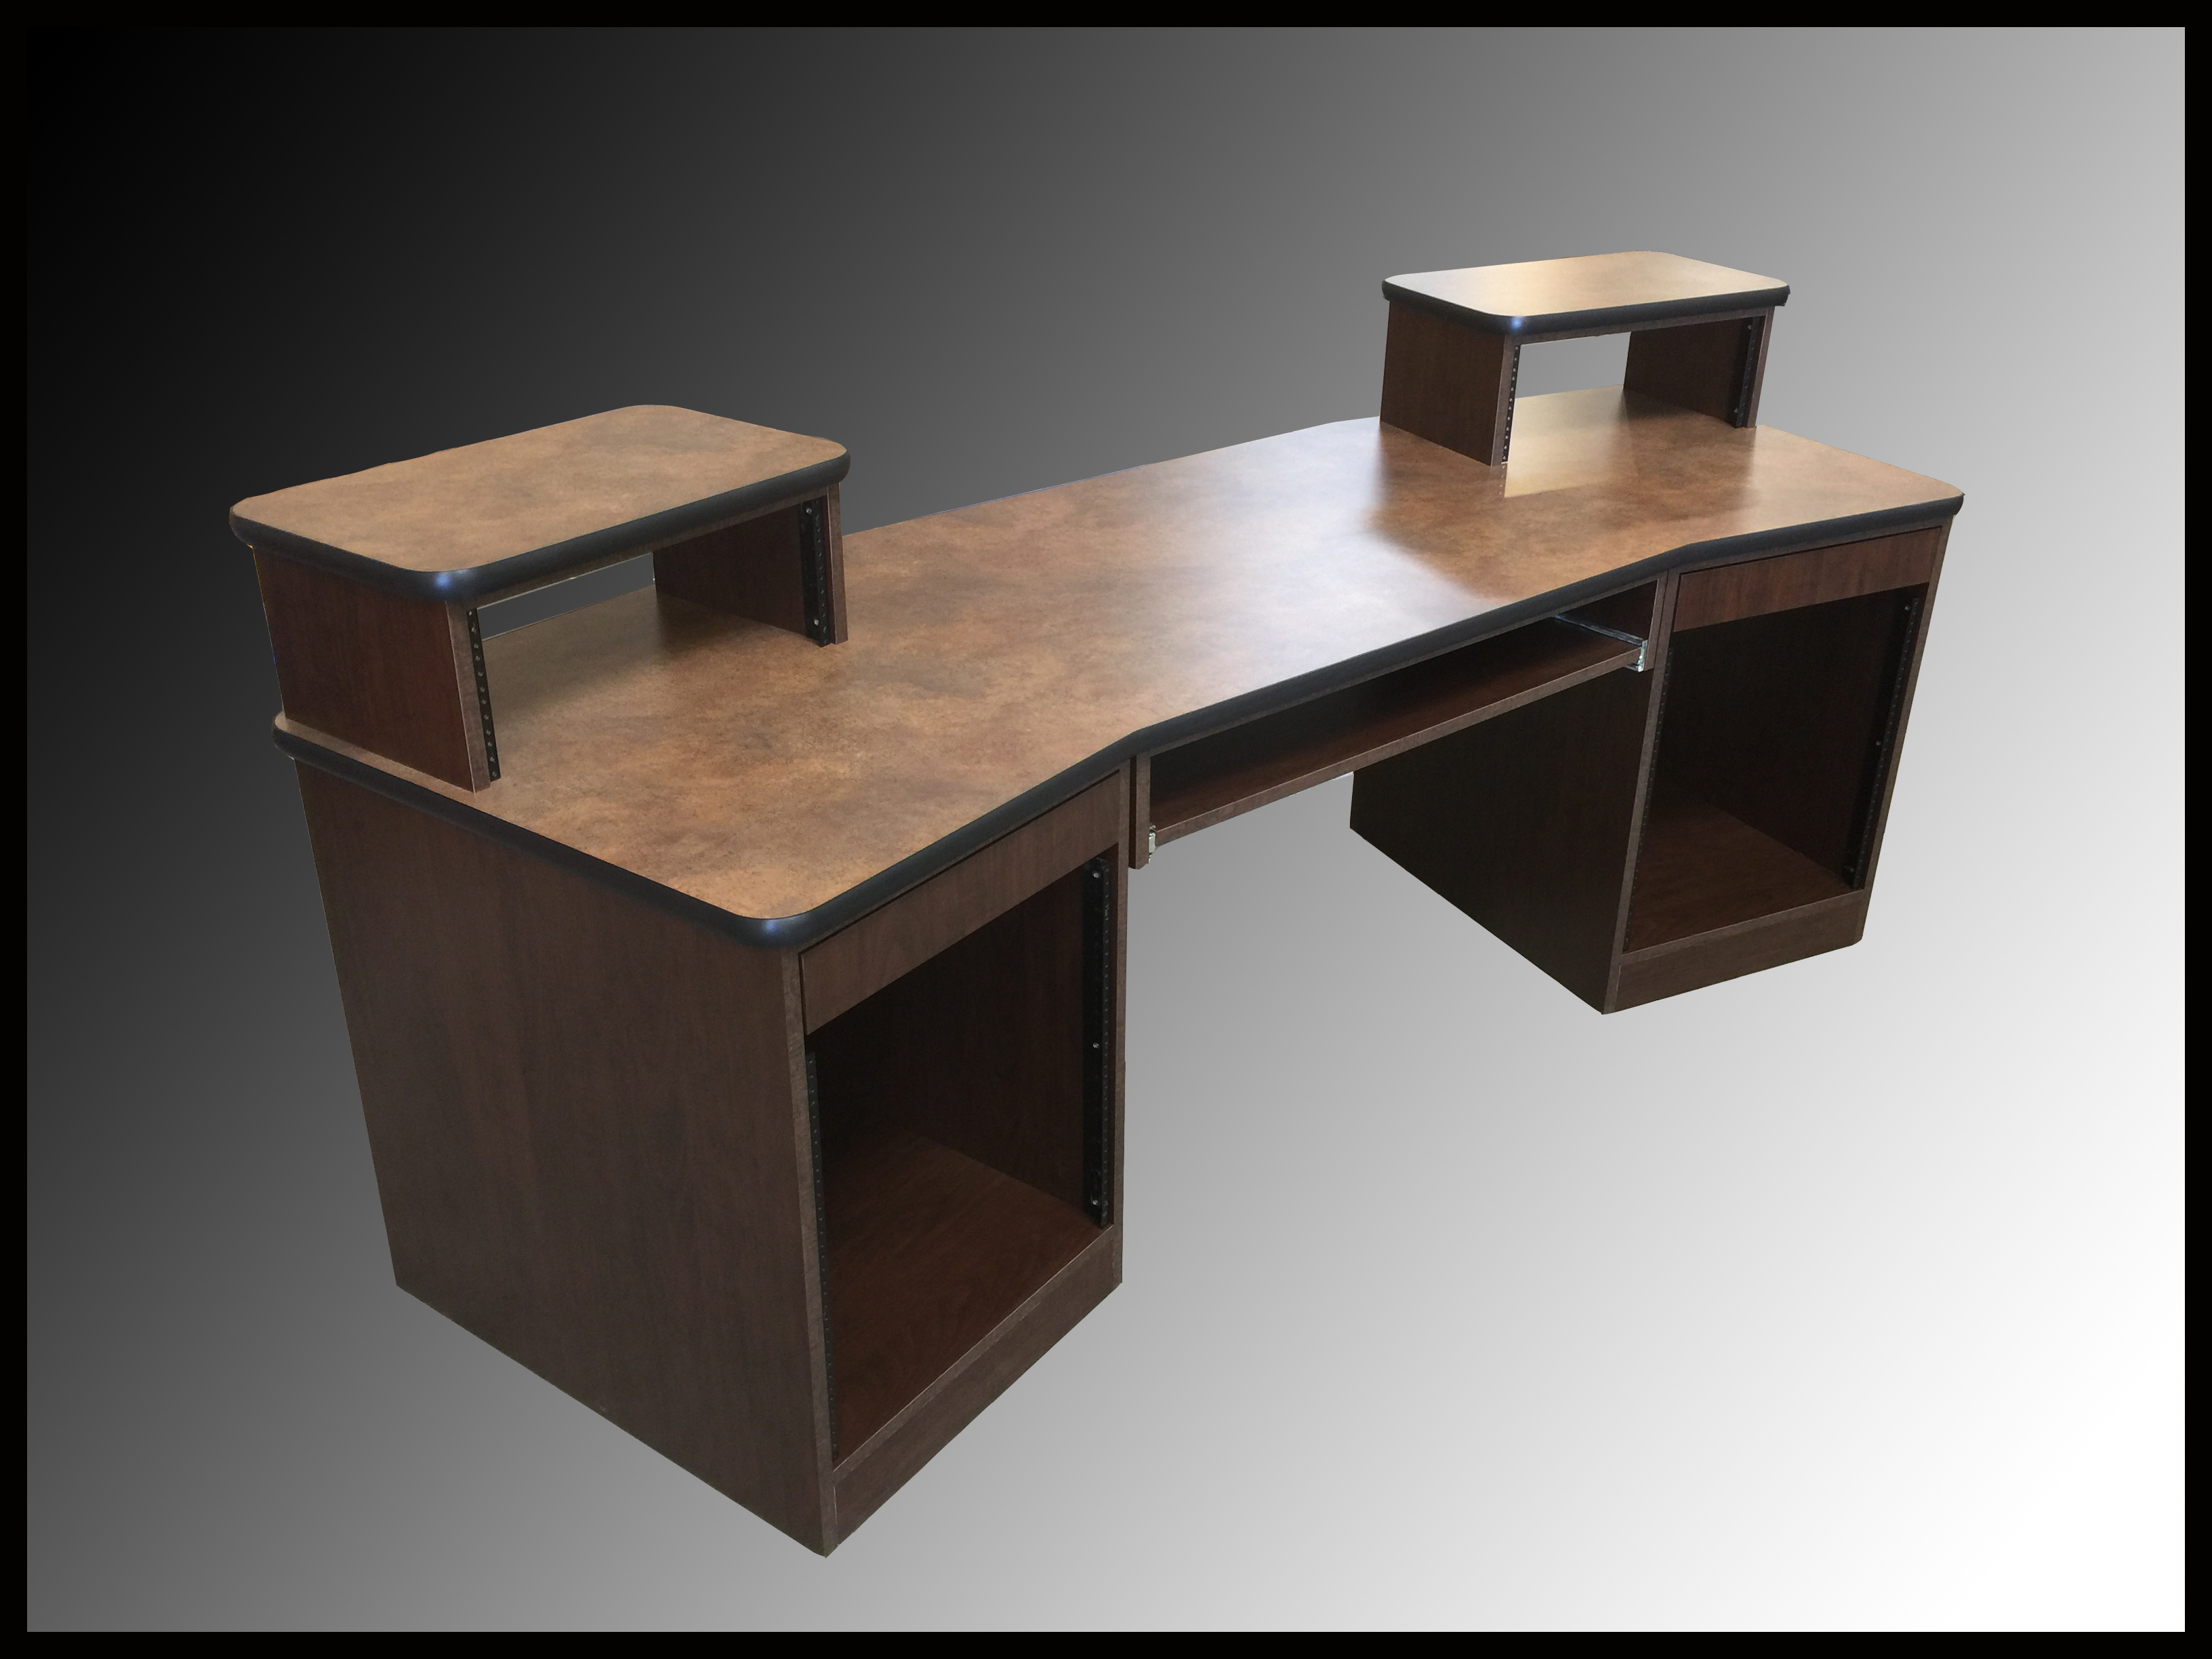 PRODUCER DESK - Chocolate Pearwood Cabinetry - Black Edge - Commercial Grade Laminate Top